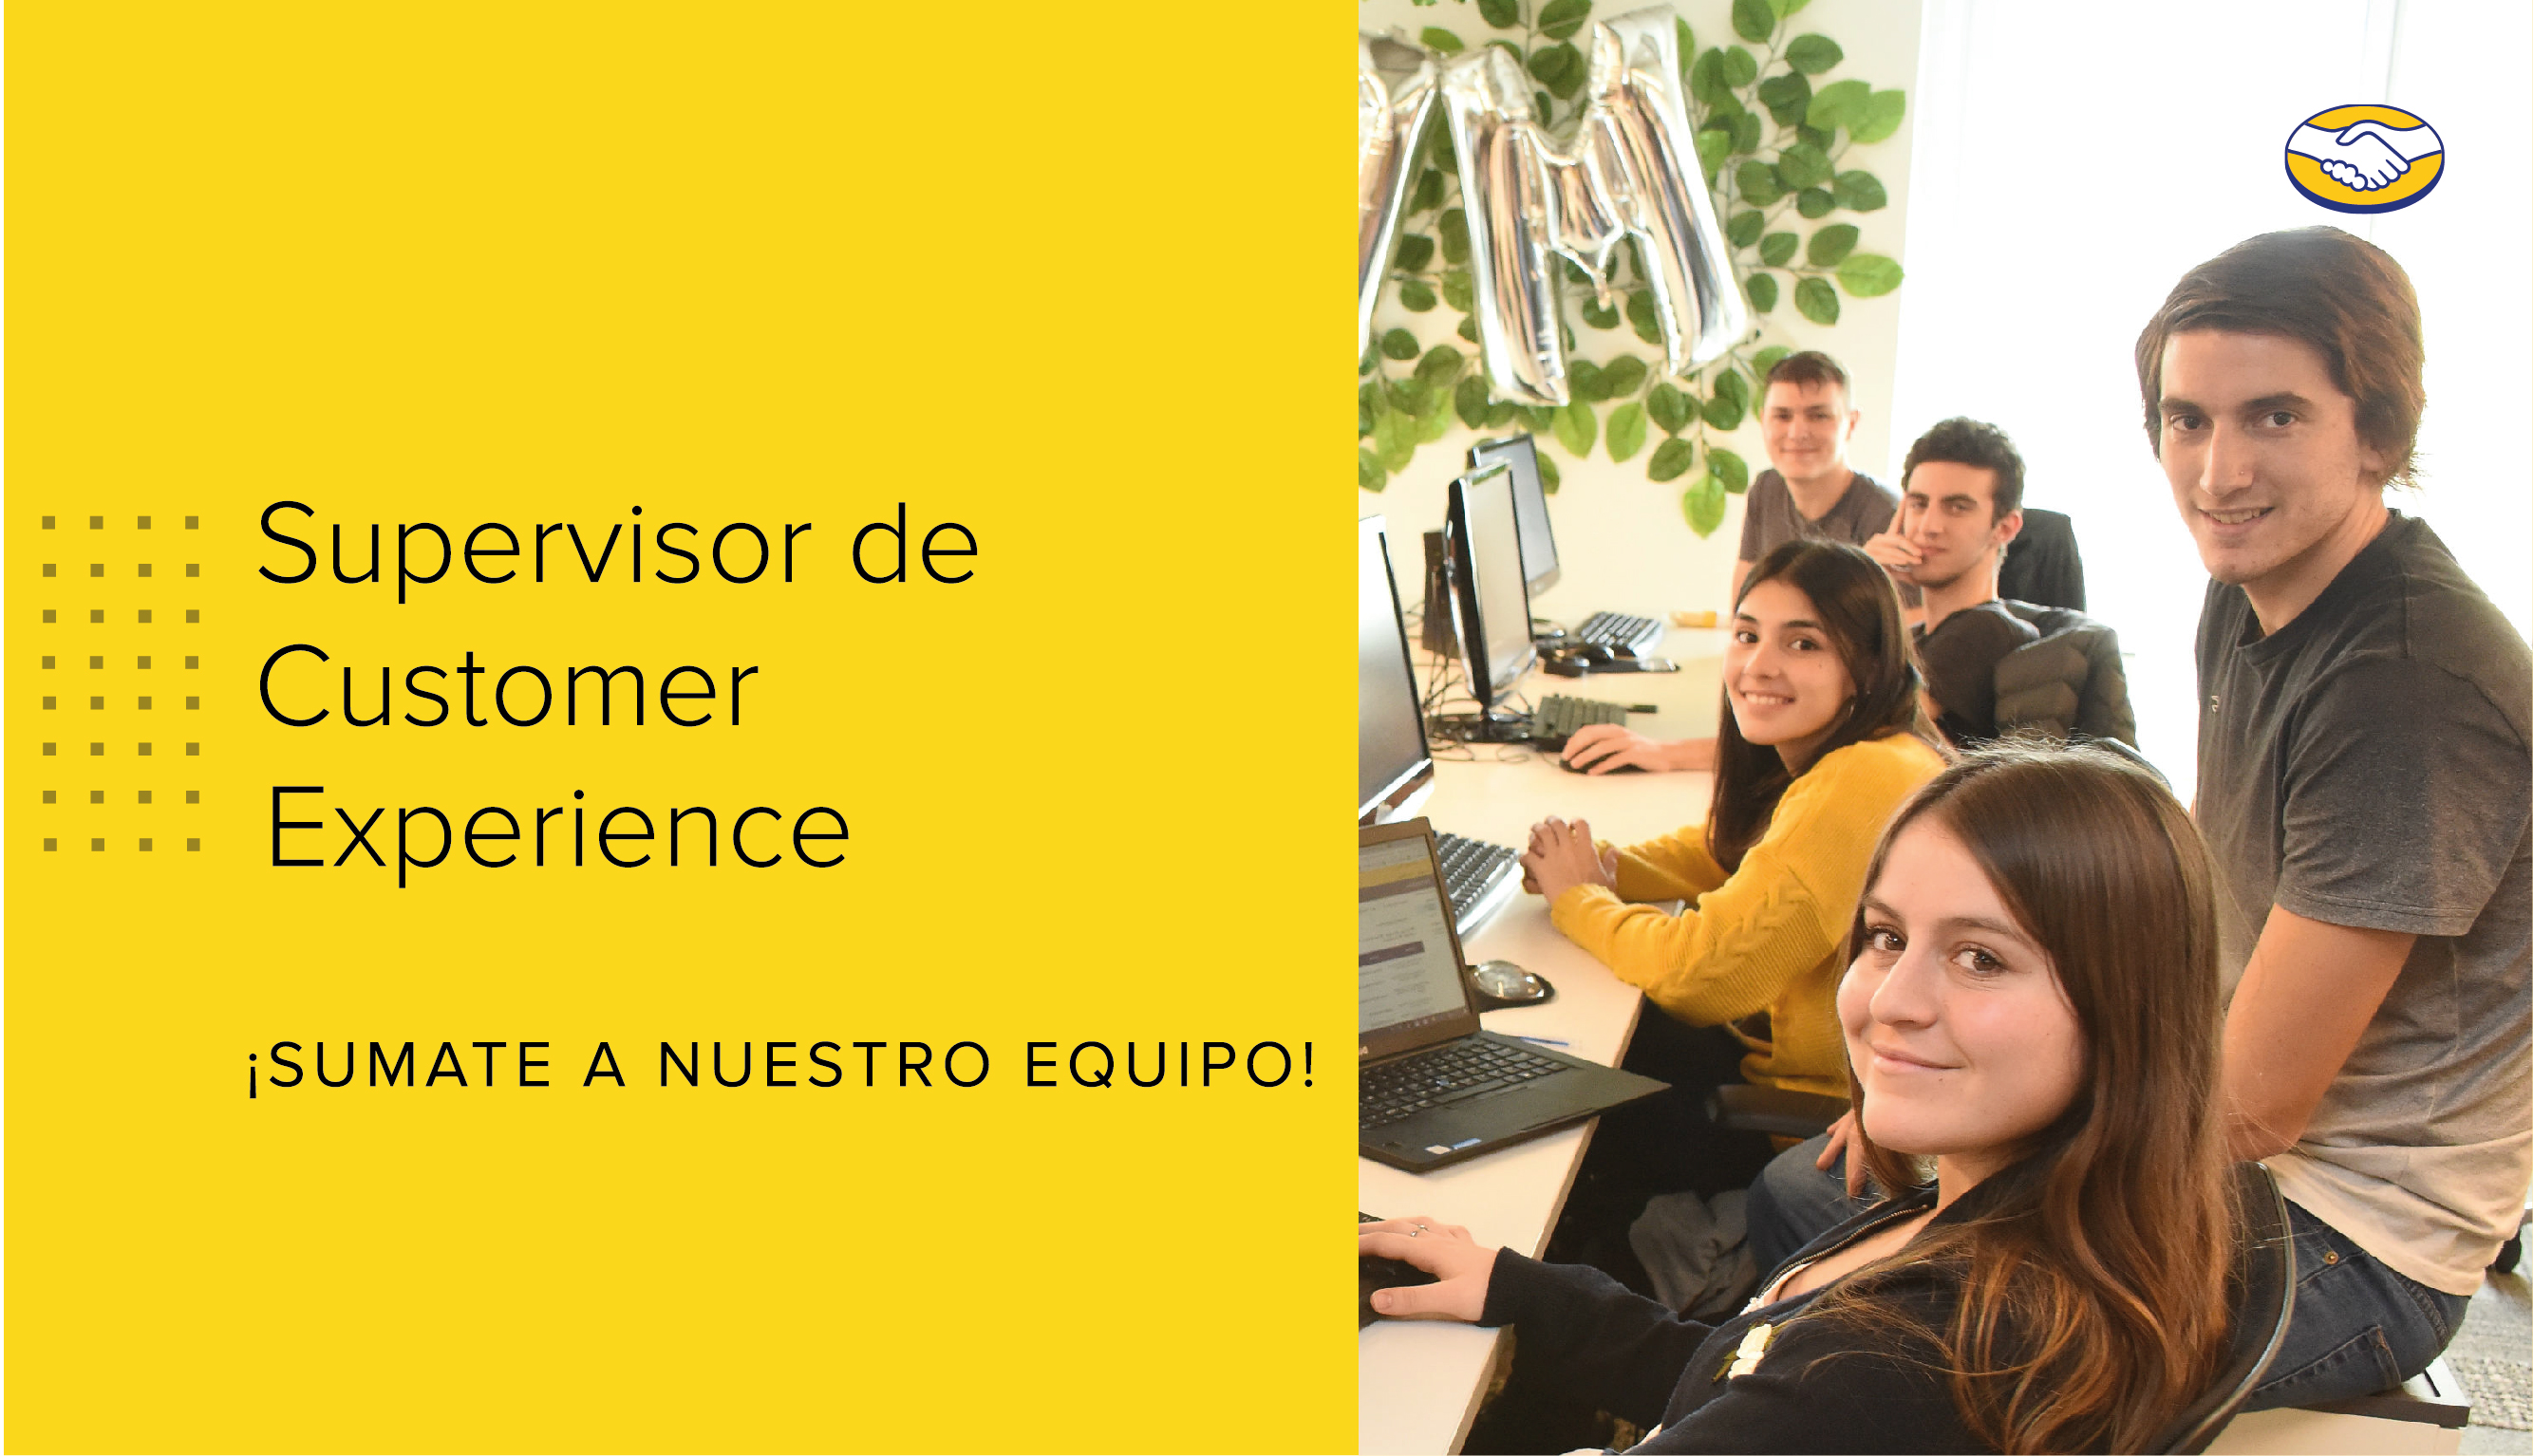 Supervisor de Customer Experience en Mercado Libre